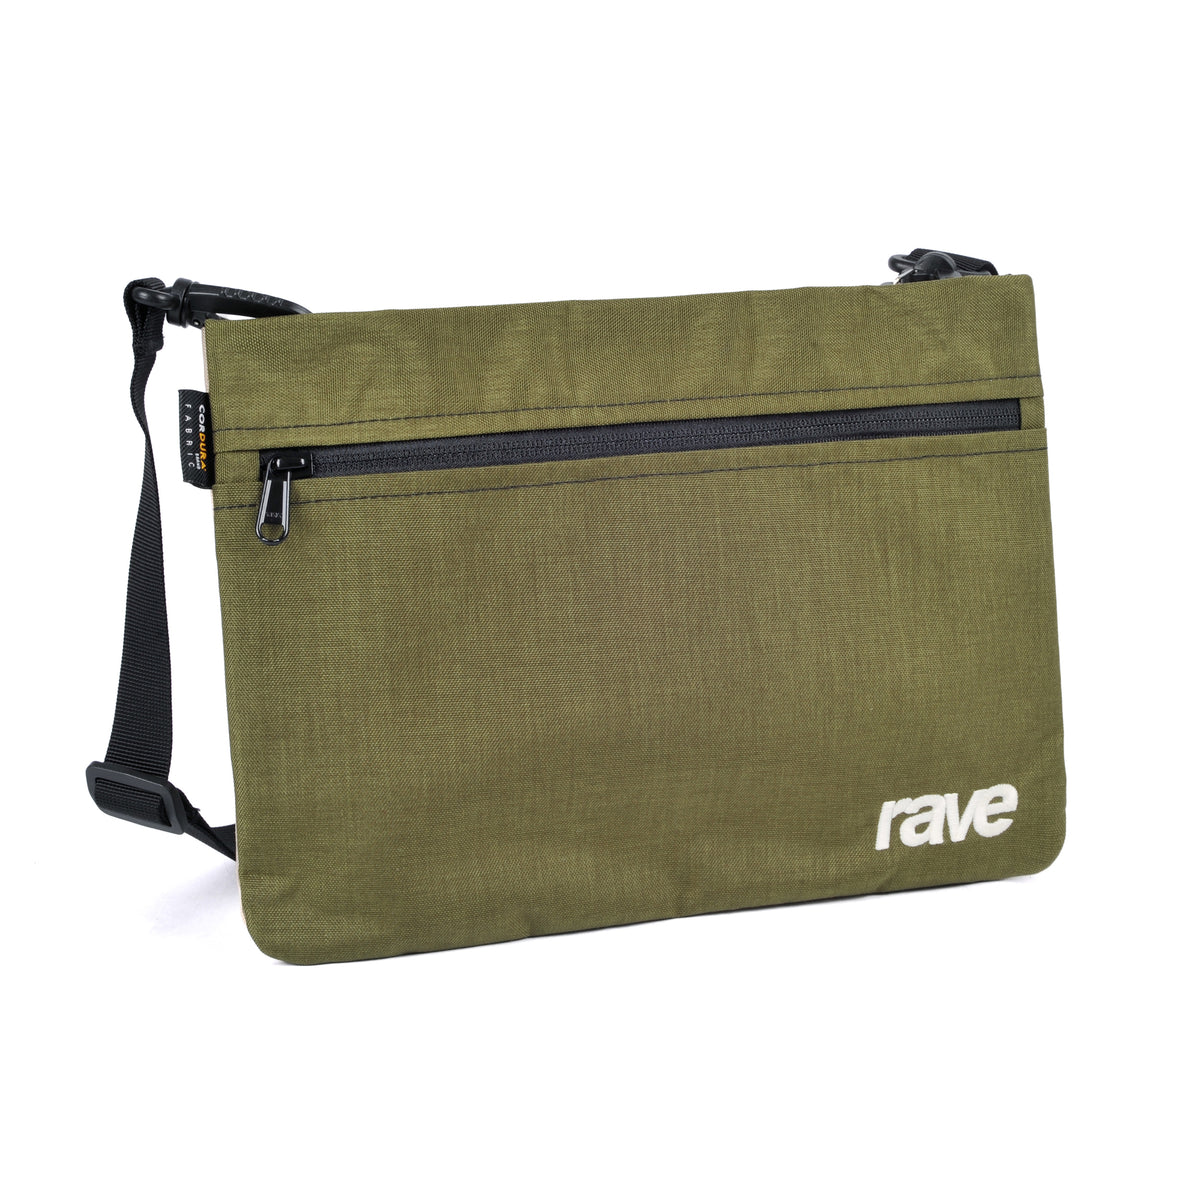 SLIM BAG olive sand - RAVE skateboards